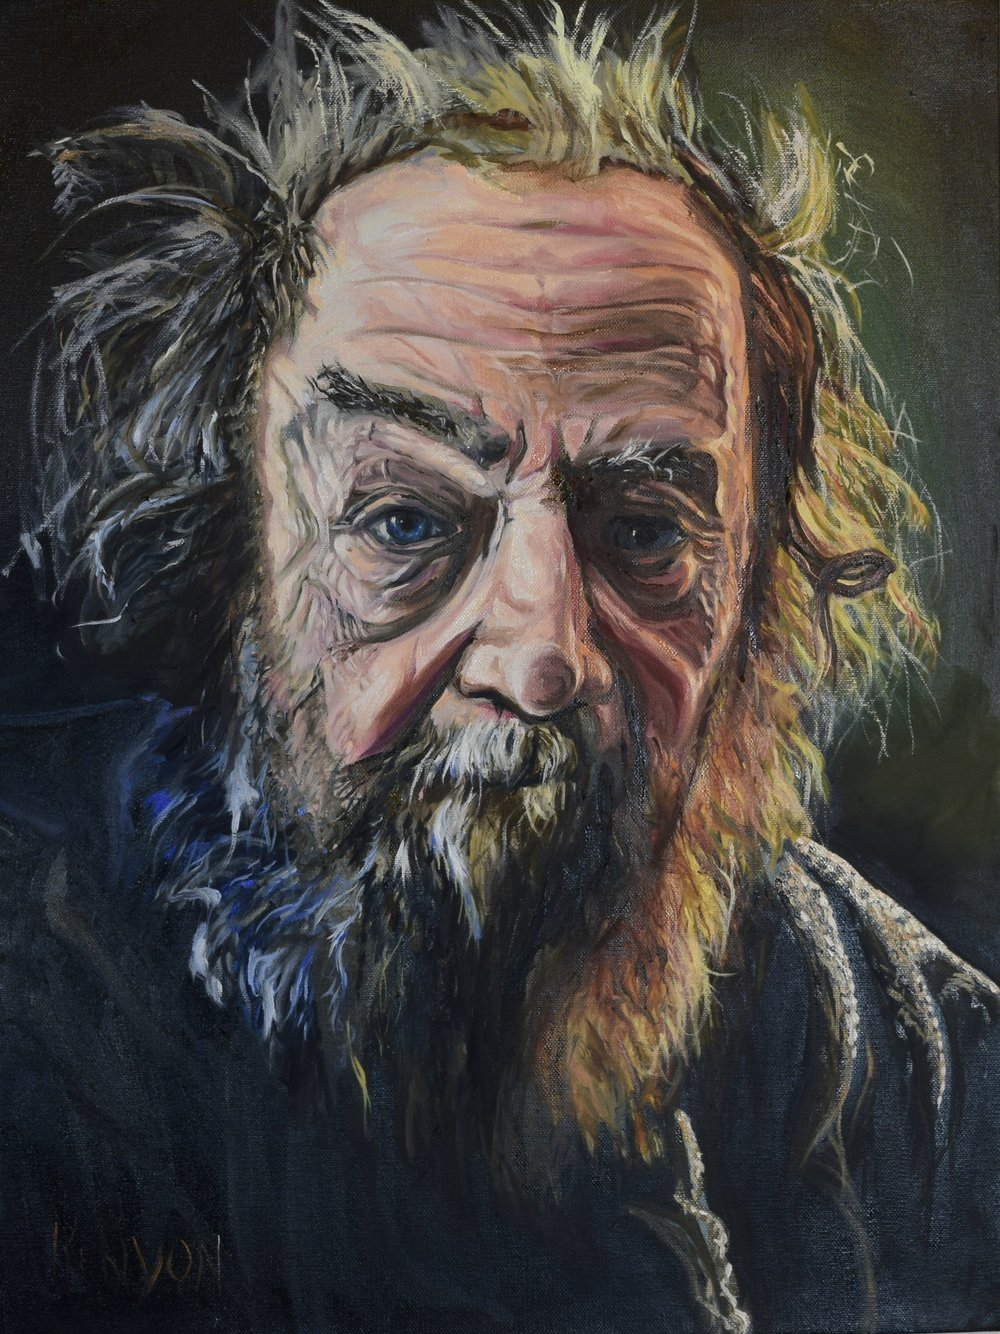 Donald Hall was a poet, author and long time resident of Hew Hampshire who passed away in 2018. This is an 18 x 24 oil on canvas portrait of him . Many thanks to New Hampshire Public Radio and Michael Brindley who's amazing photos inspired this portrait.